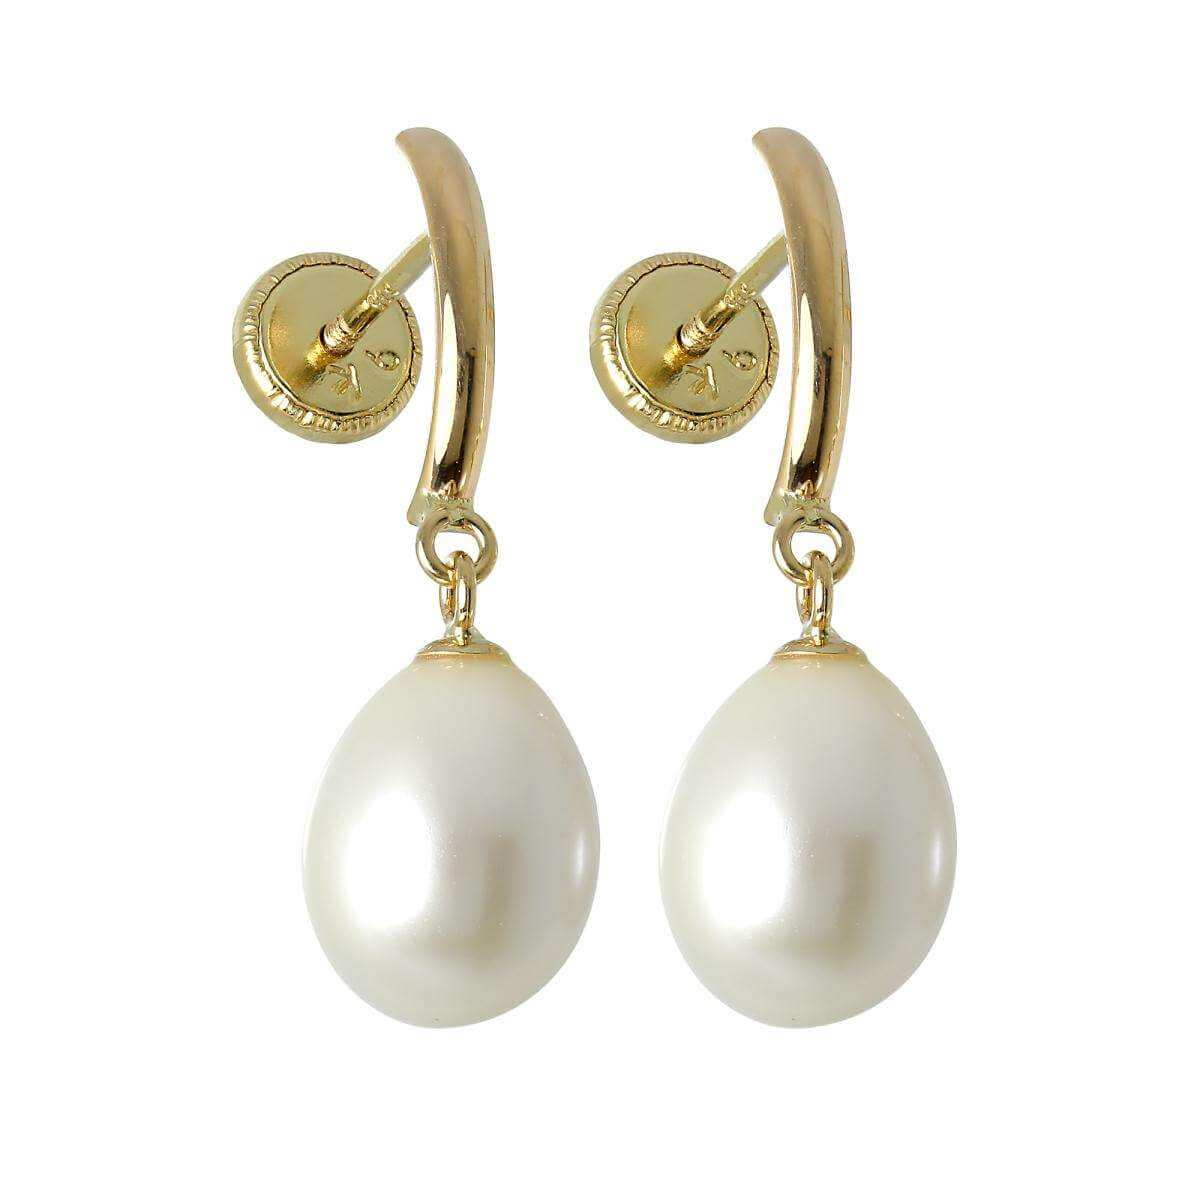 9ct Gold & Freshwater Pearl Screwback Stud Earrings